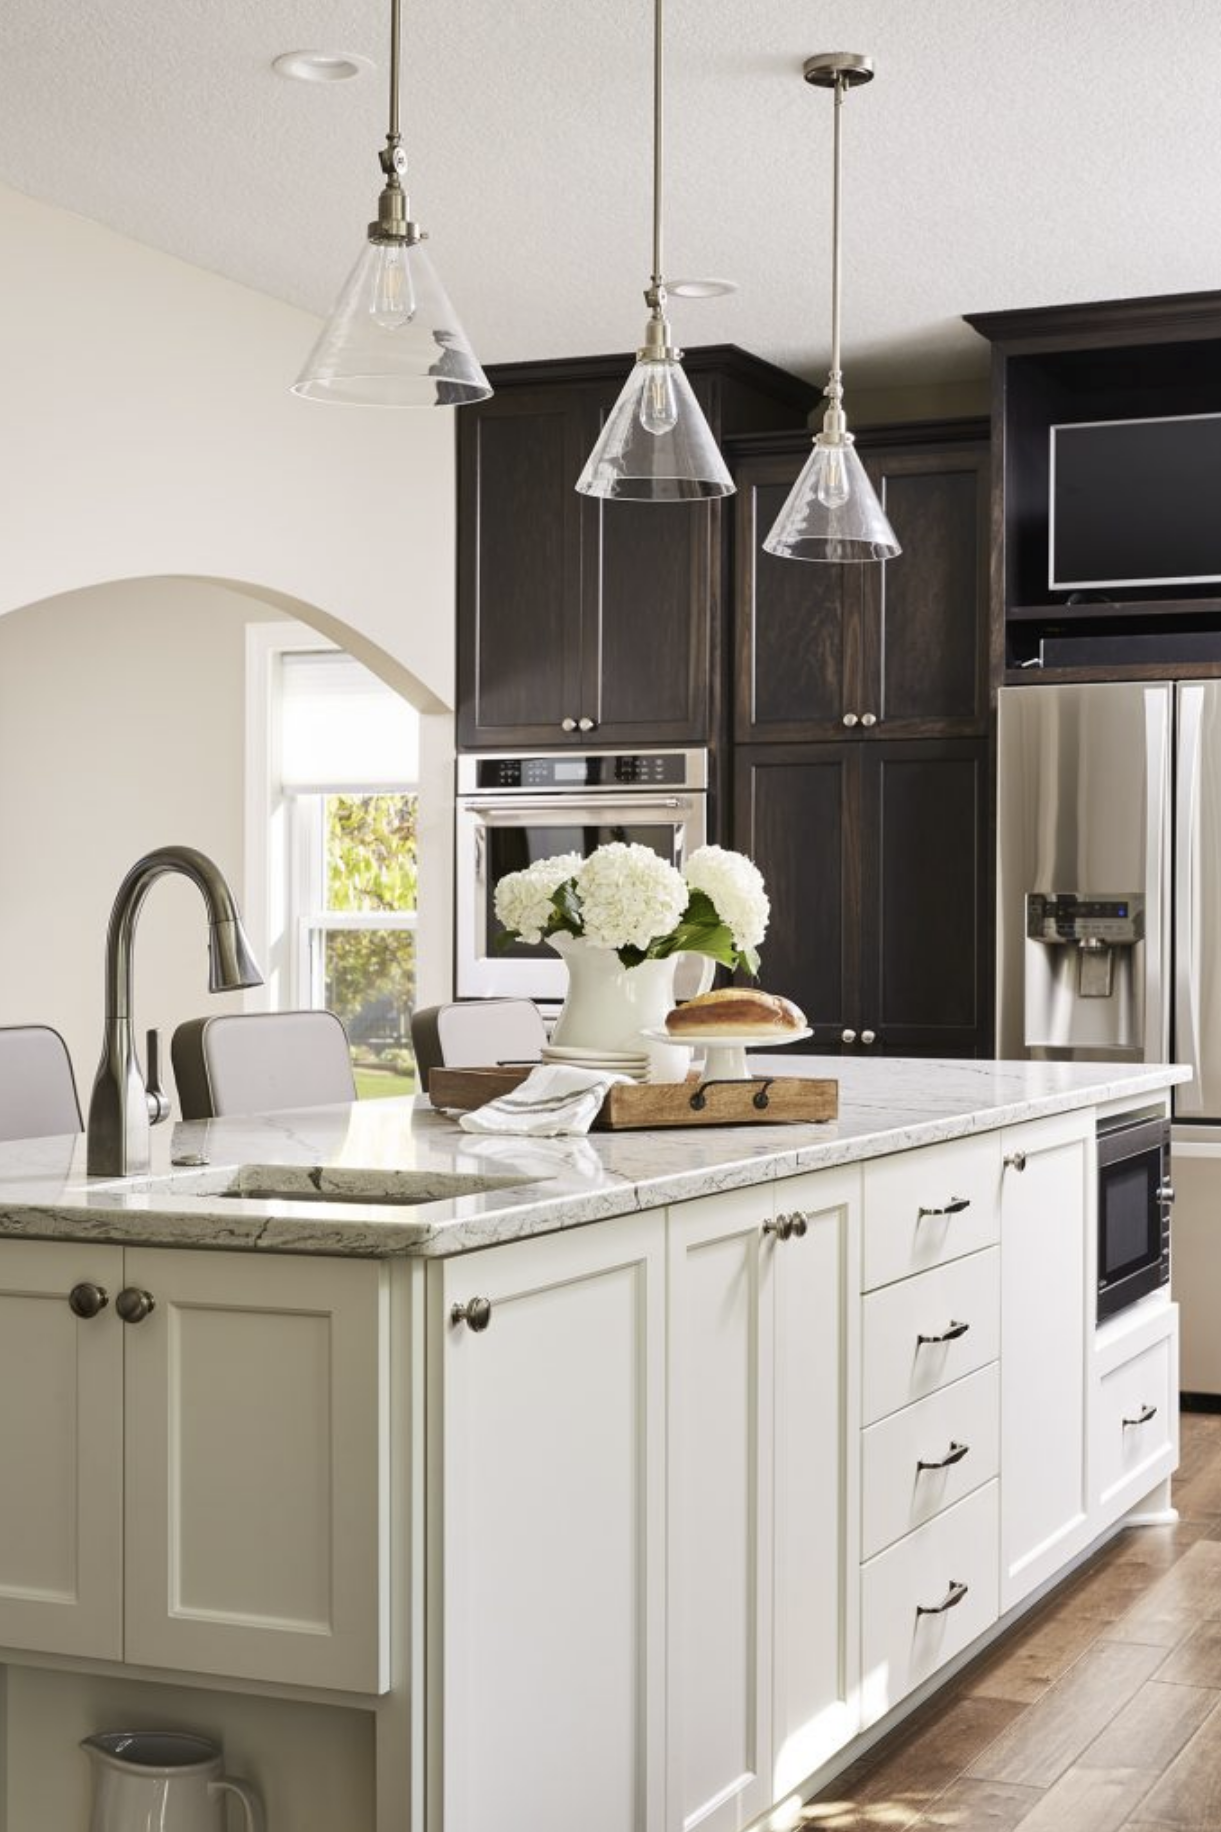 A white kitchen island with a light quartz countertop contrasted perfectly with the surrounding dark cabinets in this kitchen.